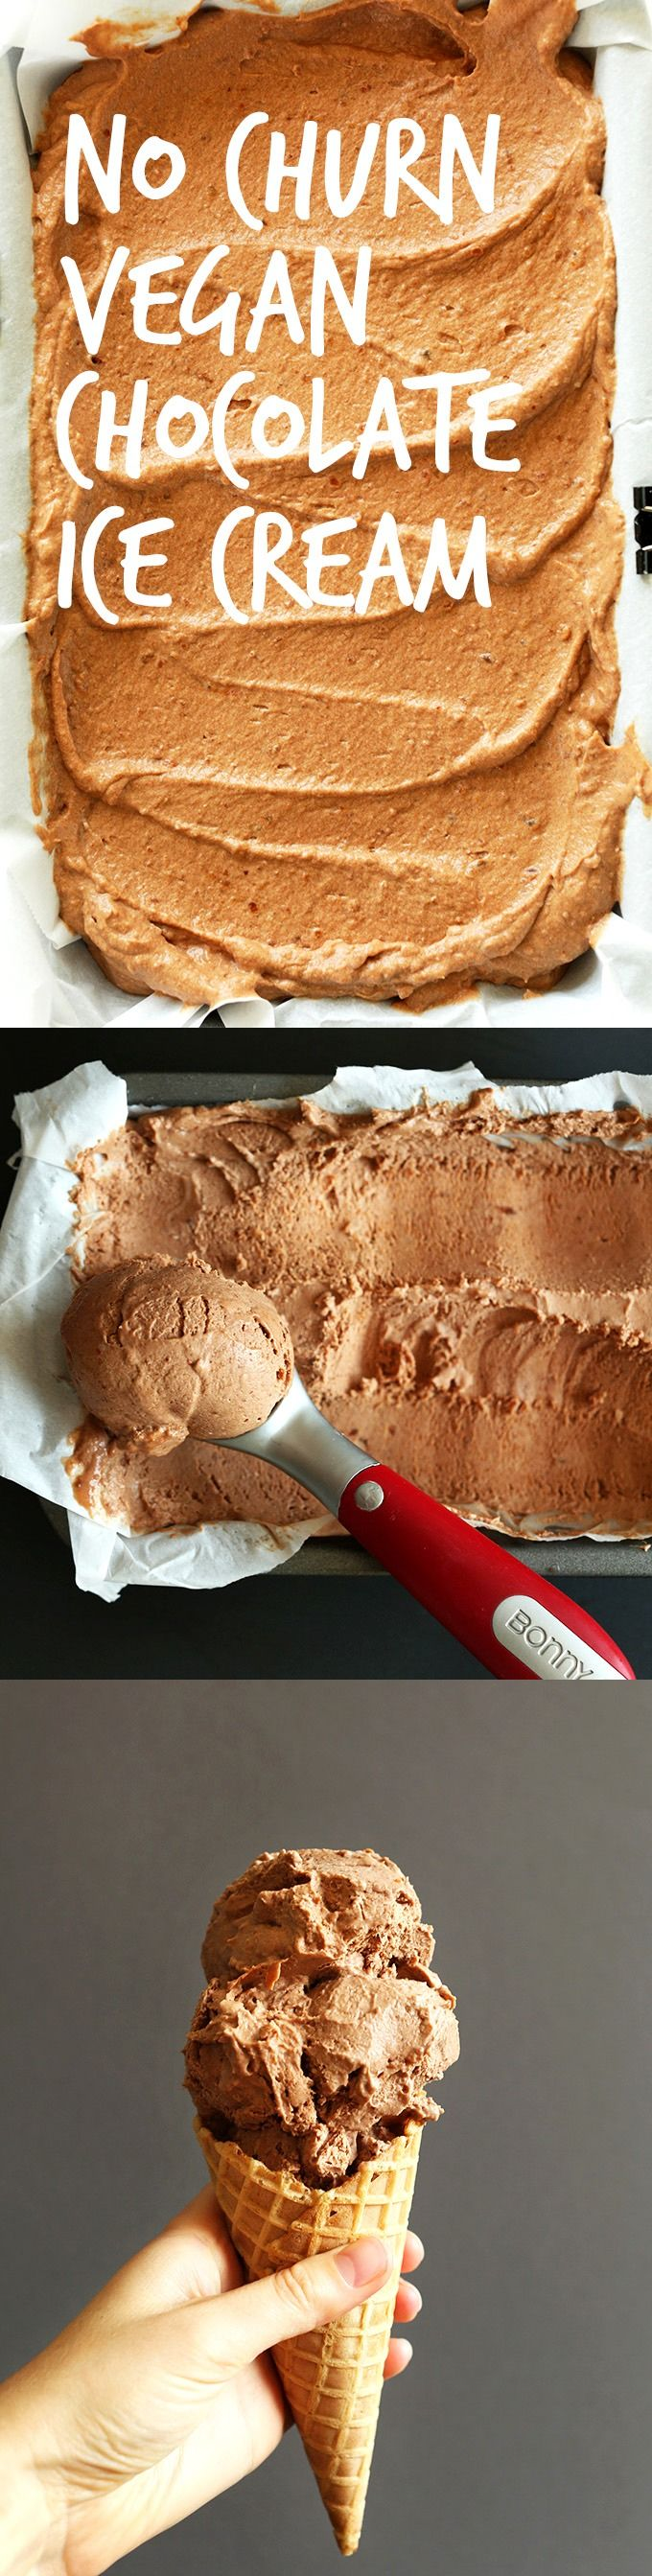 CREAMY, amazing No Churn Chocolate Ice Cream that's #vegan #glutenfree and 100% refined sugar free!! Sounds like a dessert worth trying.